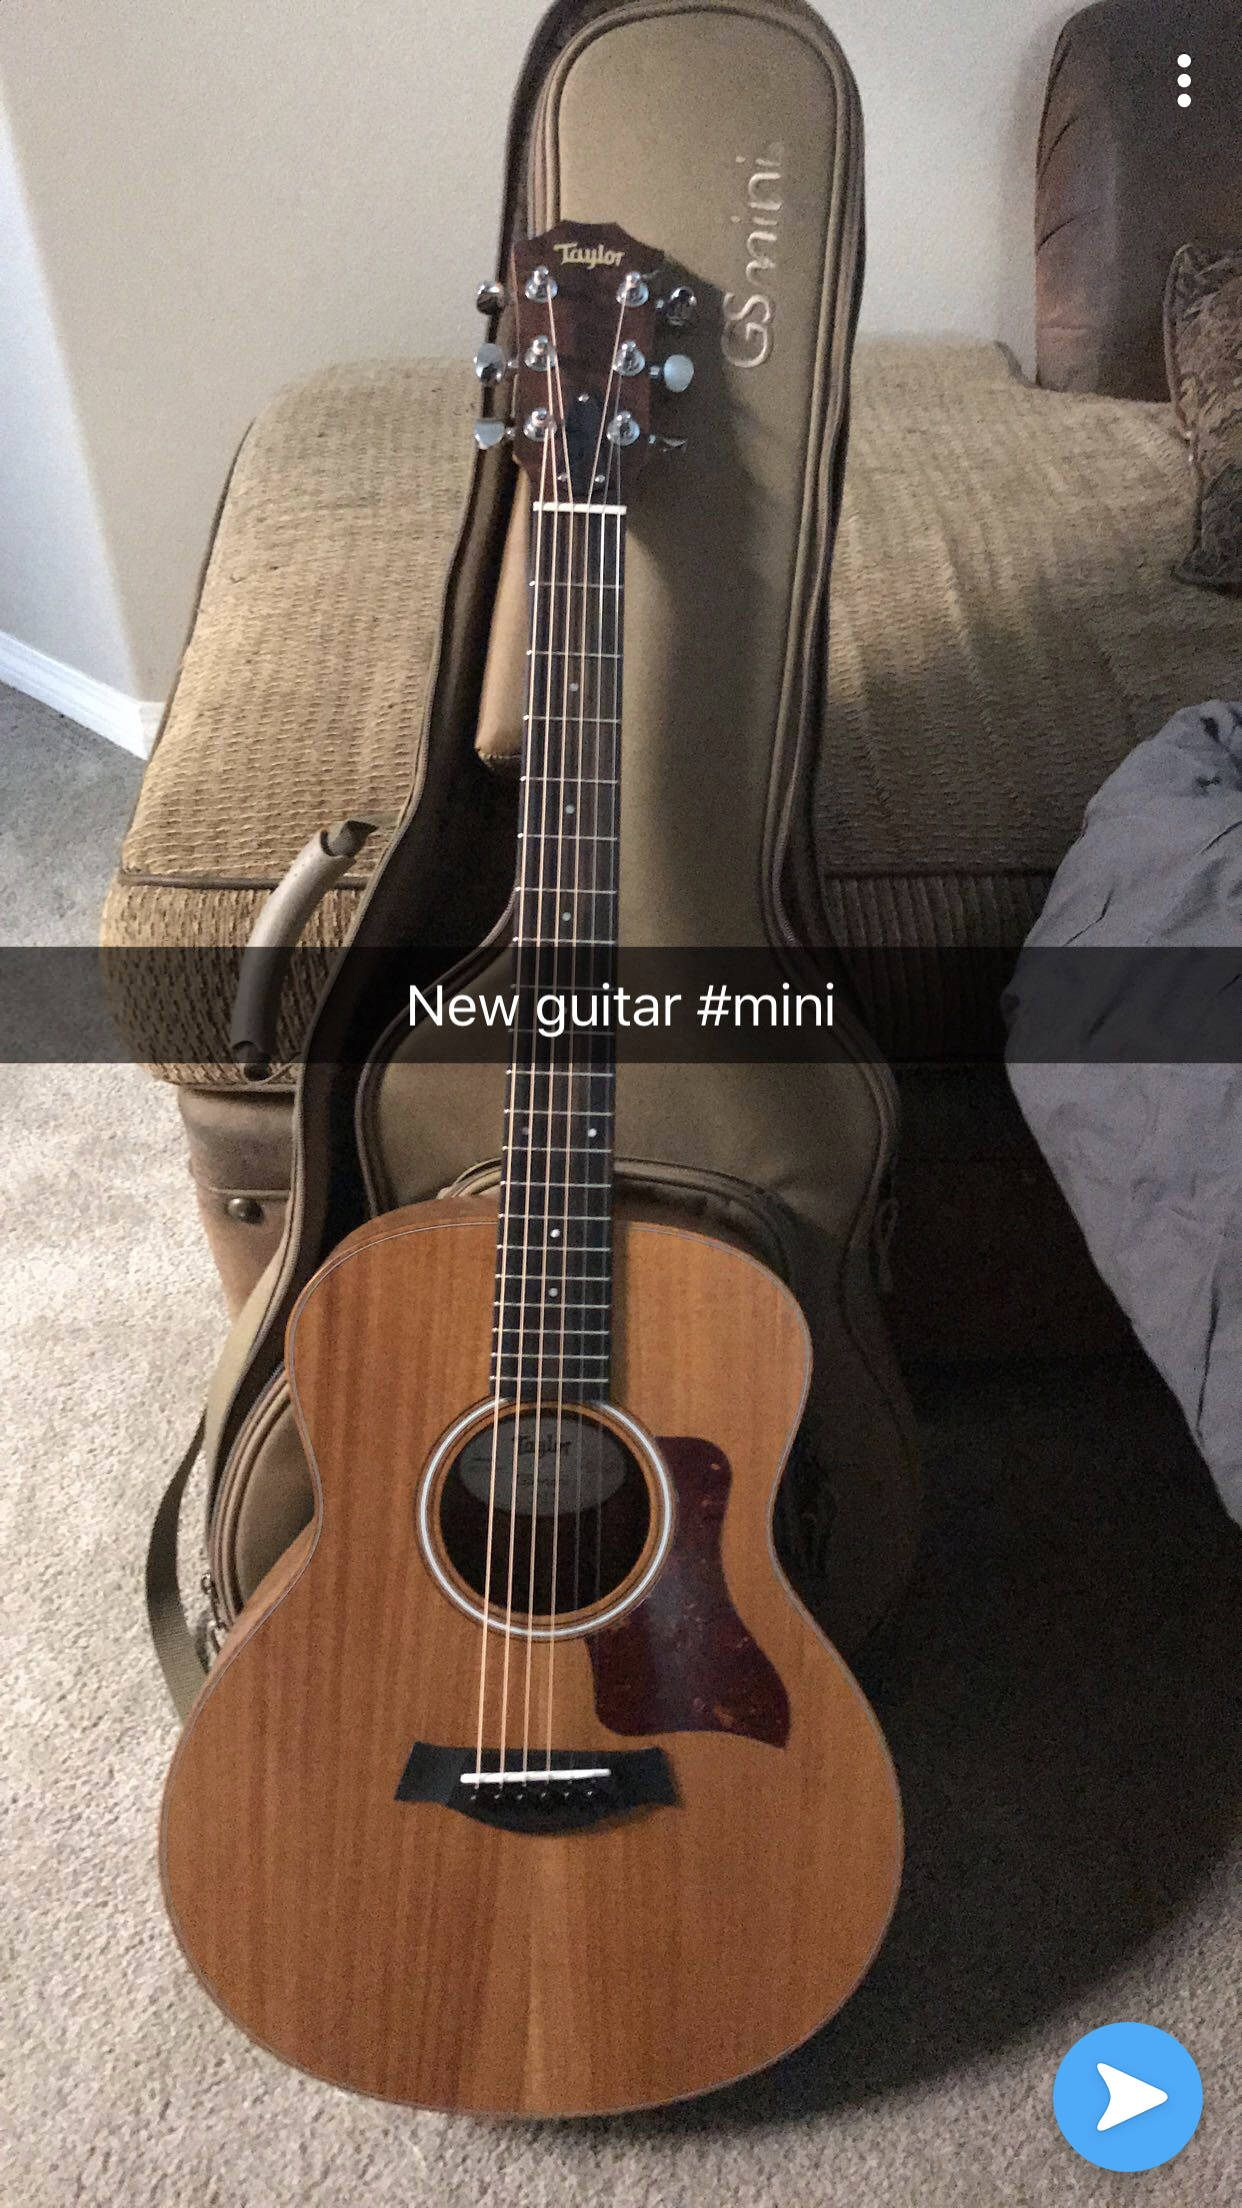 I Needed A Travel Guitar And This Mini Taylor Sounds Amazing For Its Size And Price Happy New Guitar Day To Me Guitar Mini Acoustic Guitar